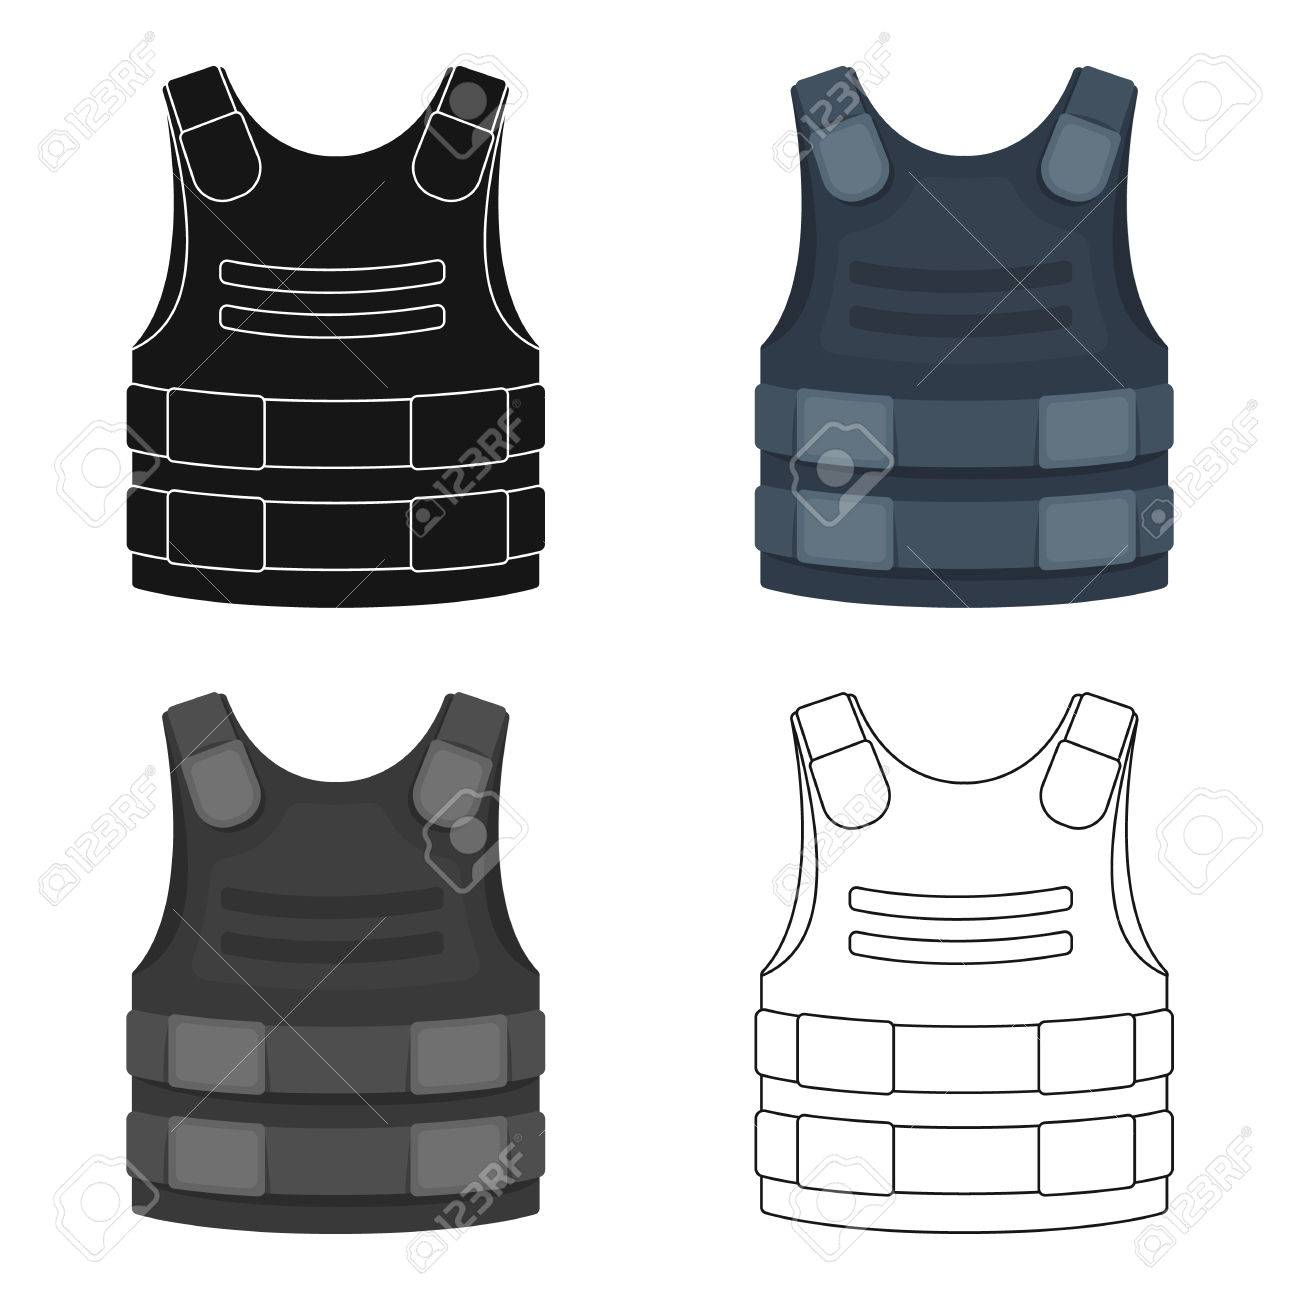 Bulletproof vest icon in cartoon style isolated on white background